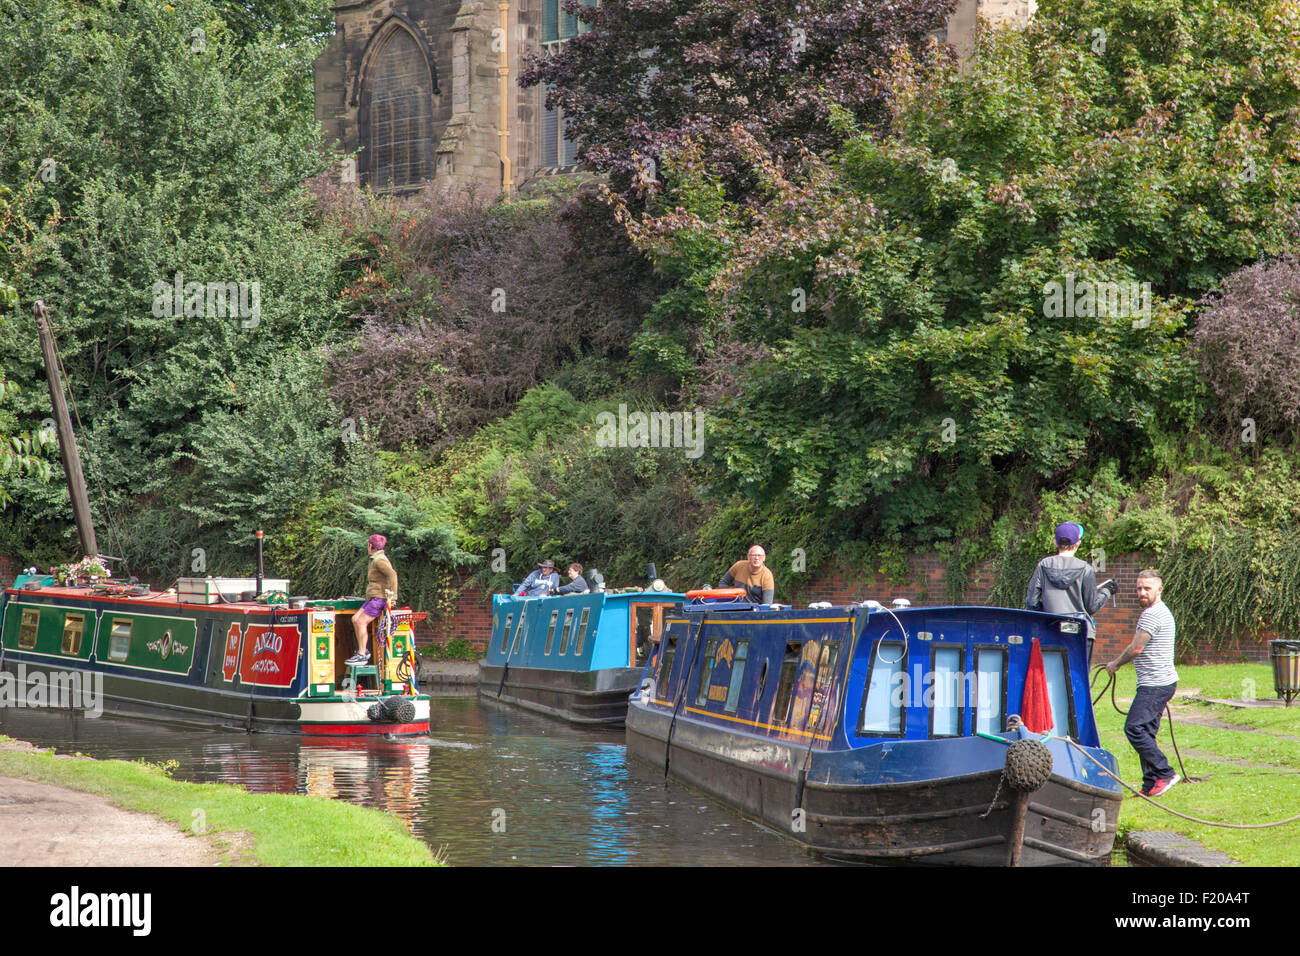 The Staffs and Worcester Canal, Kidderminster, Worcestershire, England, UK - Stock Image